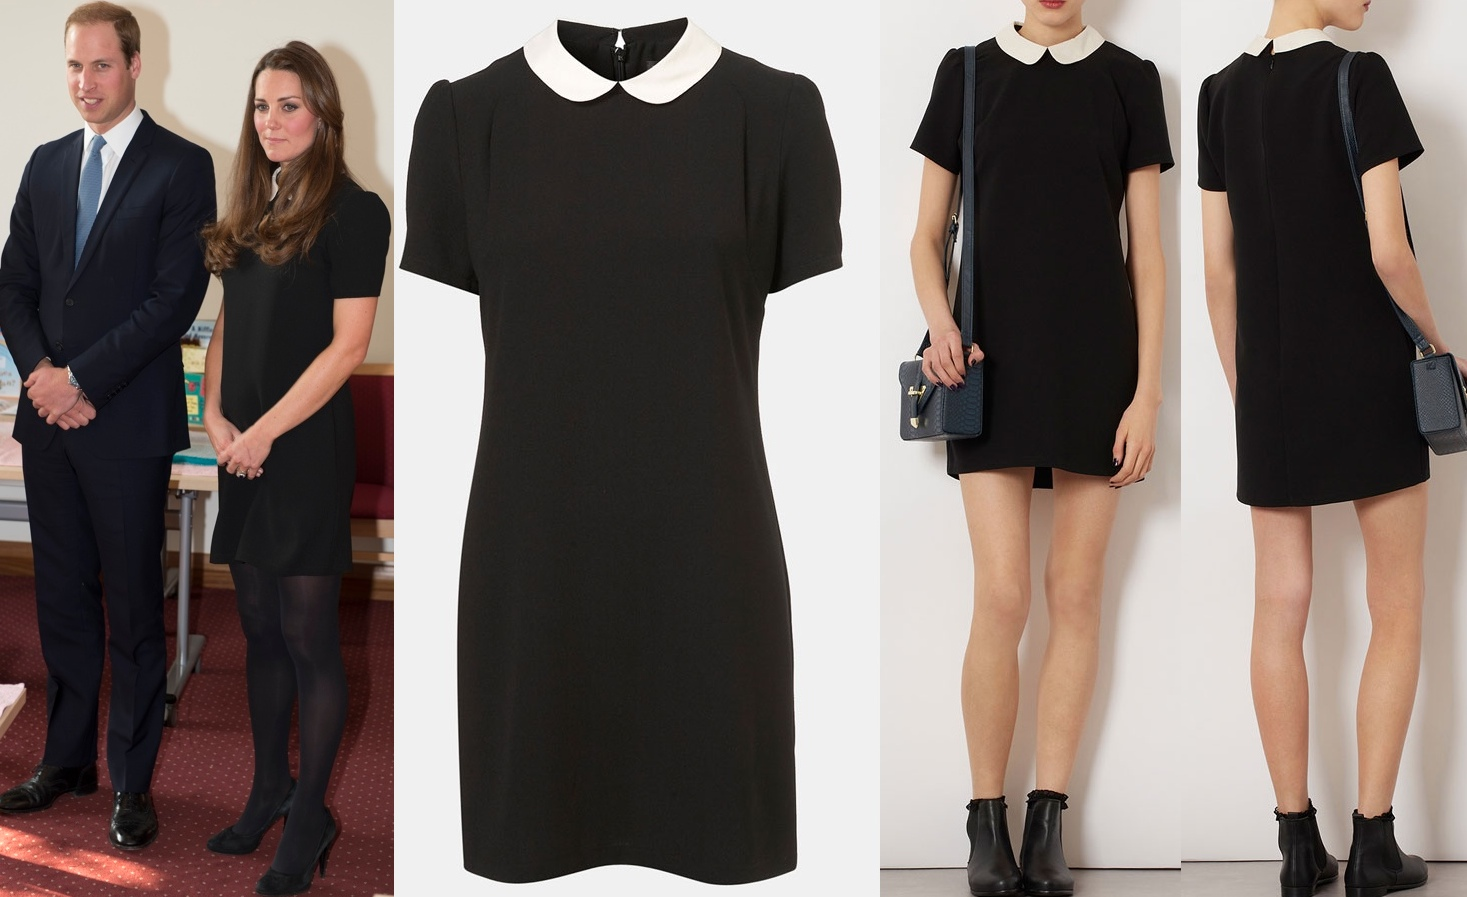 Kate-Bereavement-Center-Topshop-Black-Dress-White-Collar-Edwards-PA-Wire.jpg